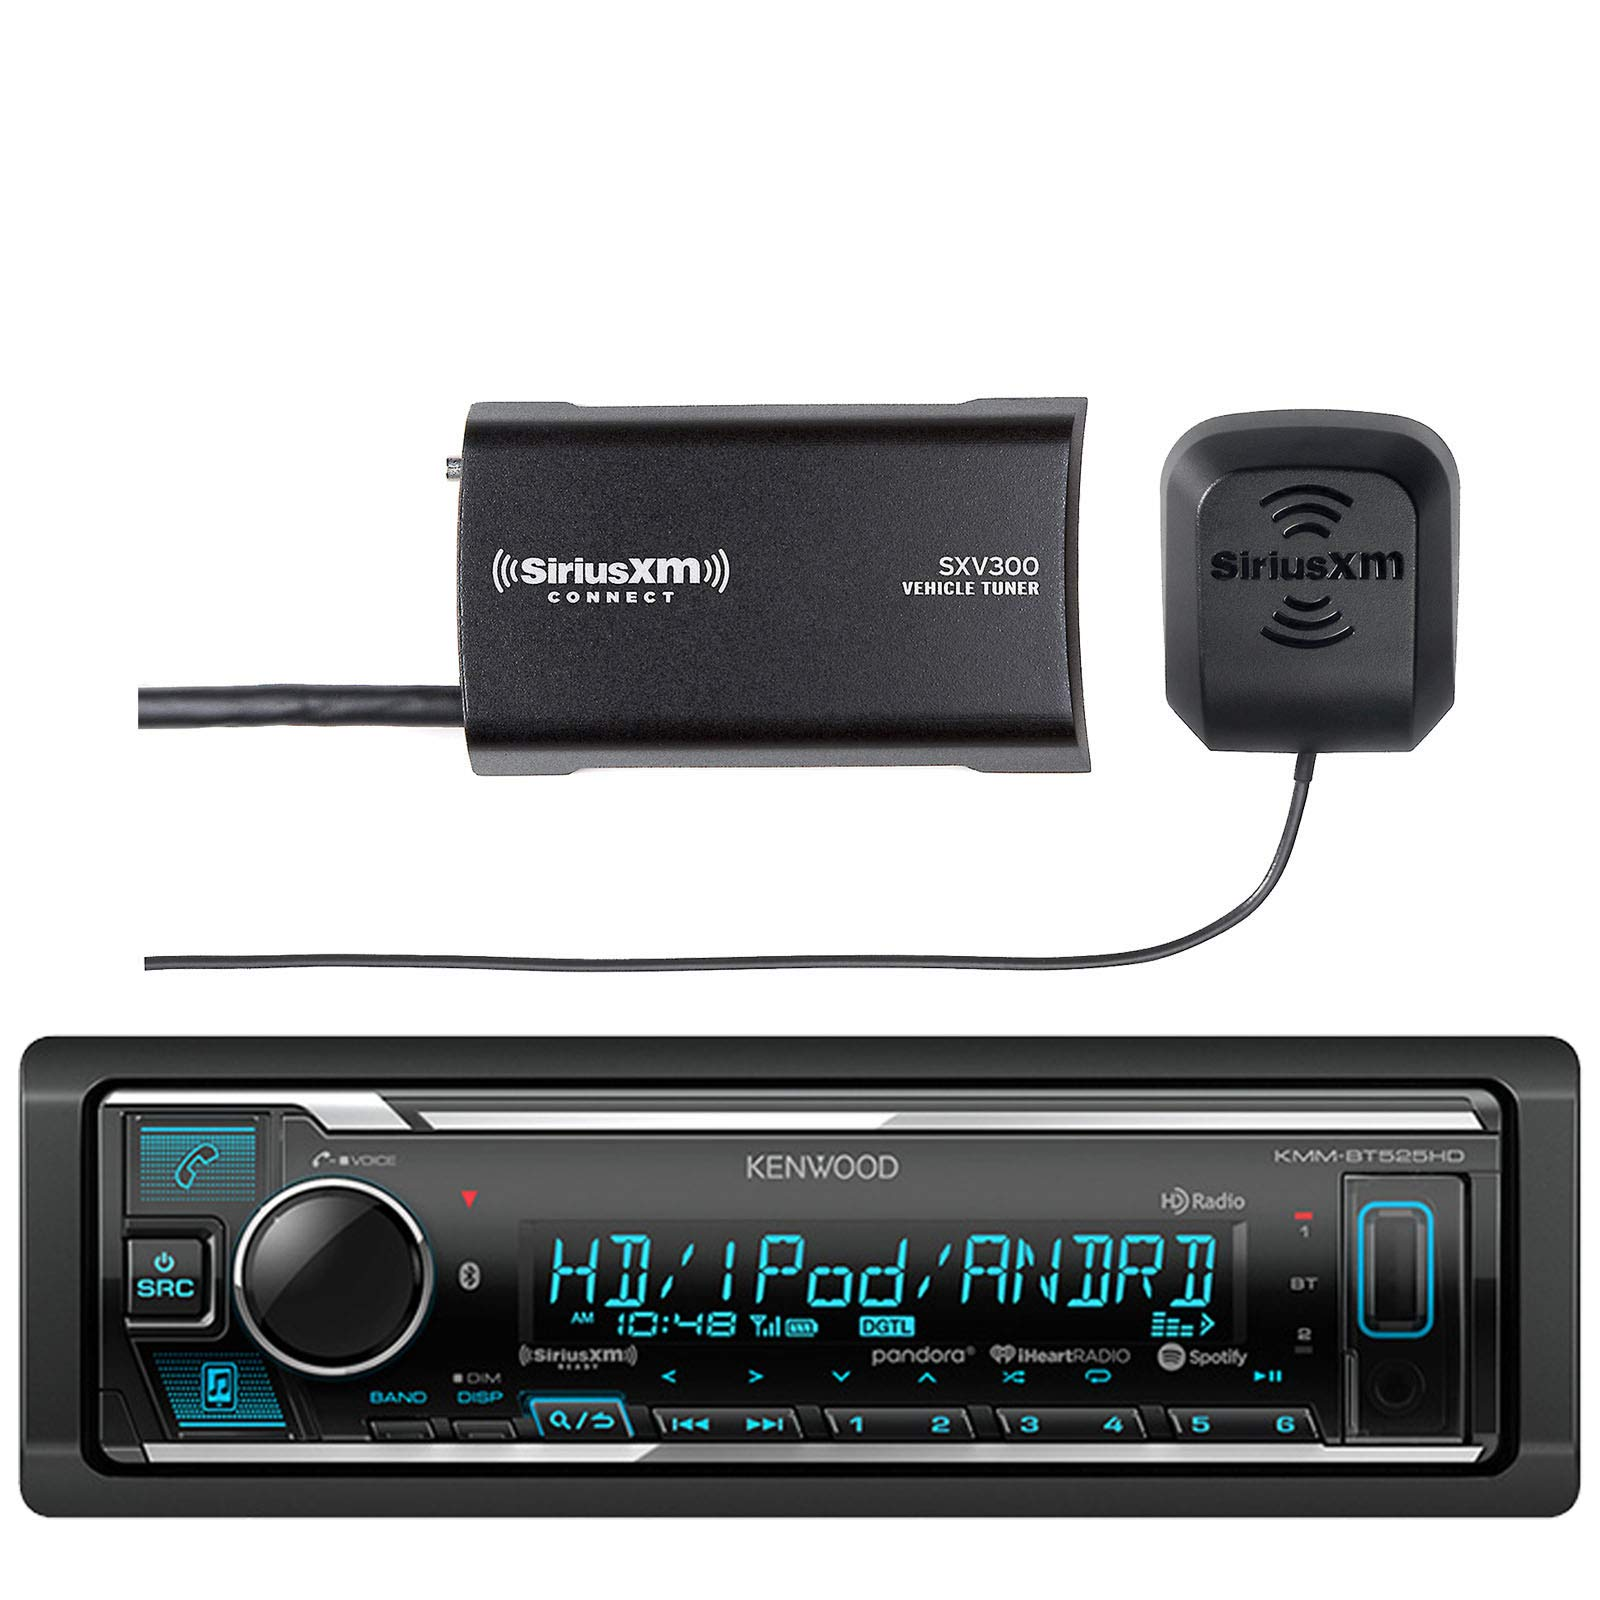 Kenwood in-Dash Stereo Receiver, Bluetooth, HD Radio, Pandora, iheart Radio Radio with Sirius Vehicle Satellite Radio Tuner